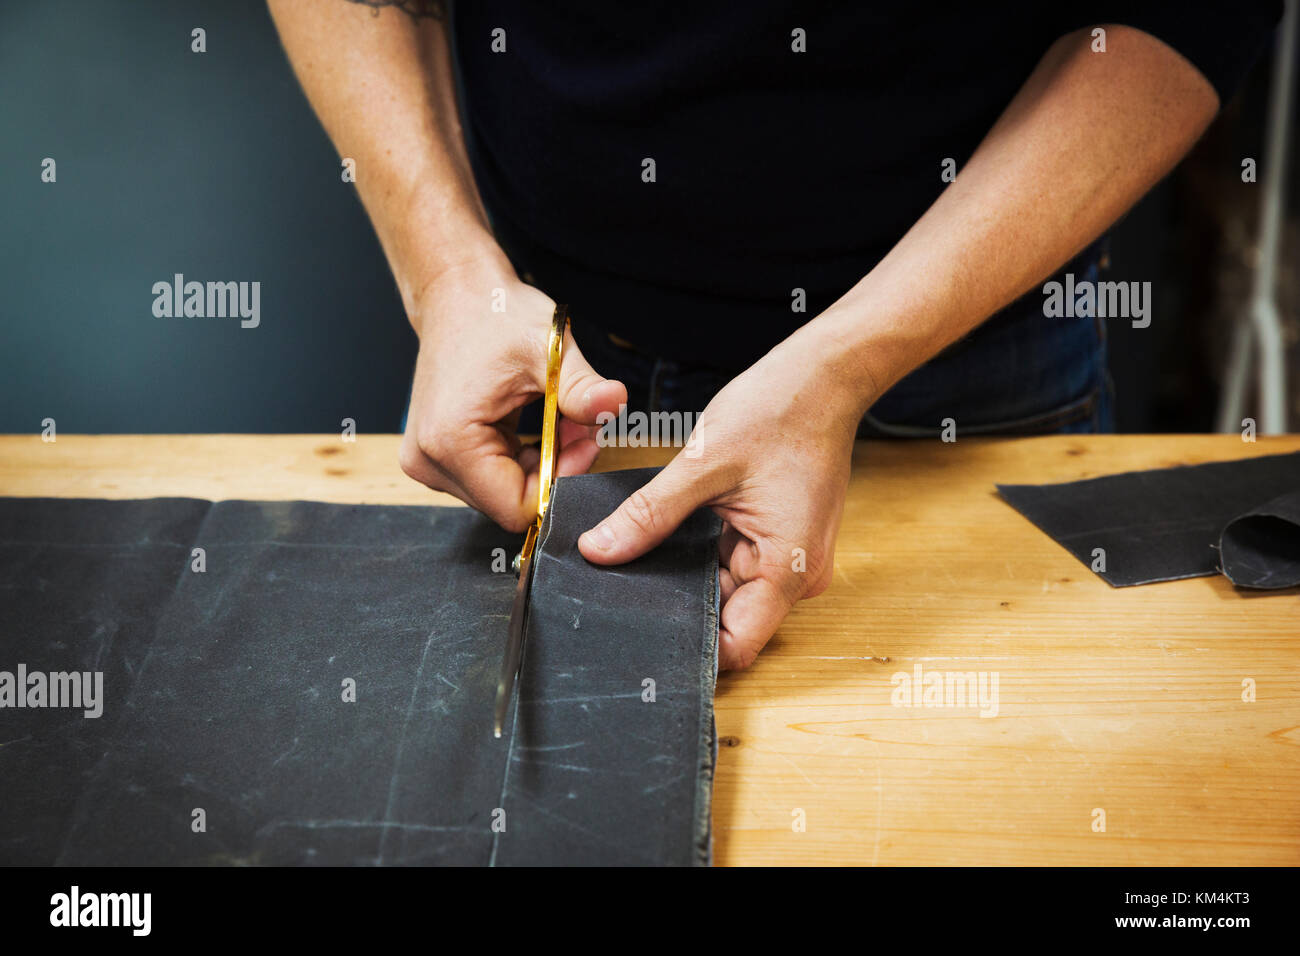 A man cutting a piece of grey fabric with shears. - Stock Image